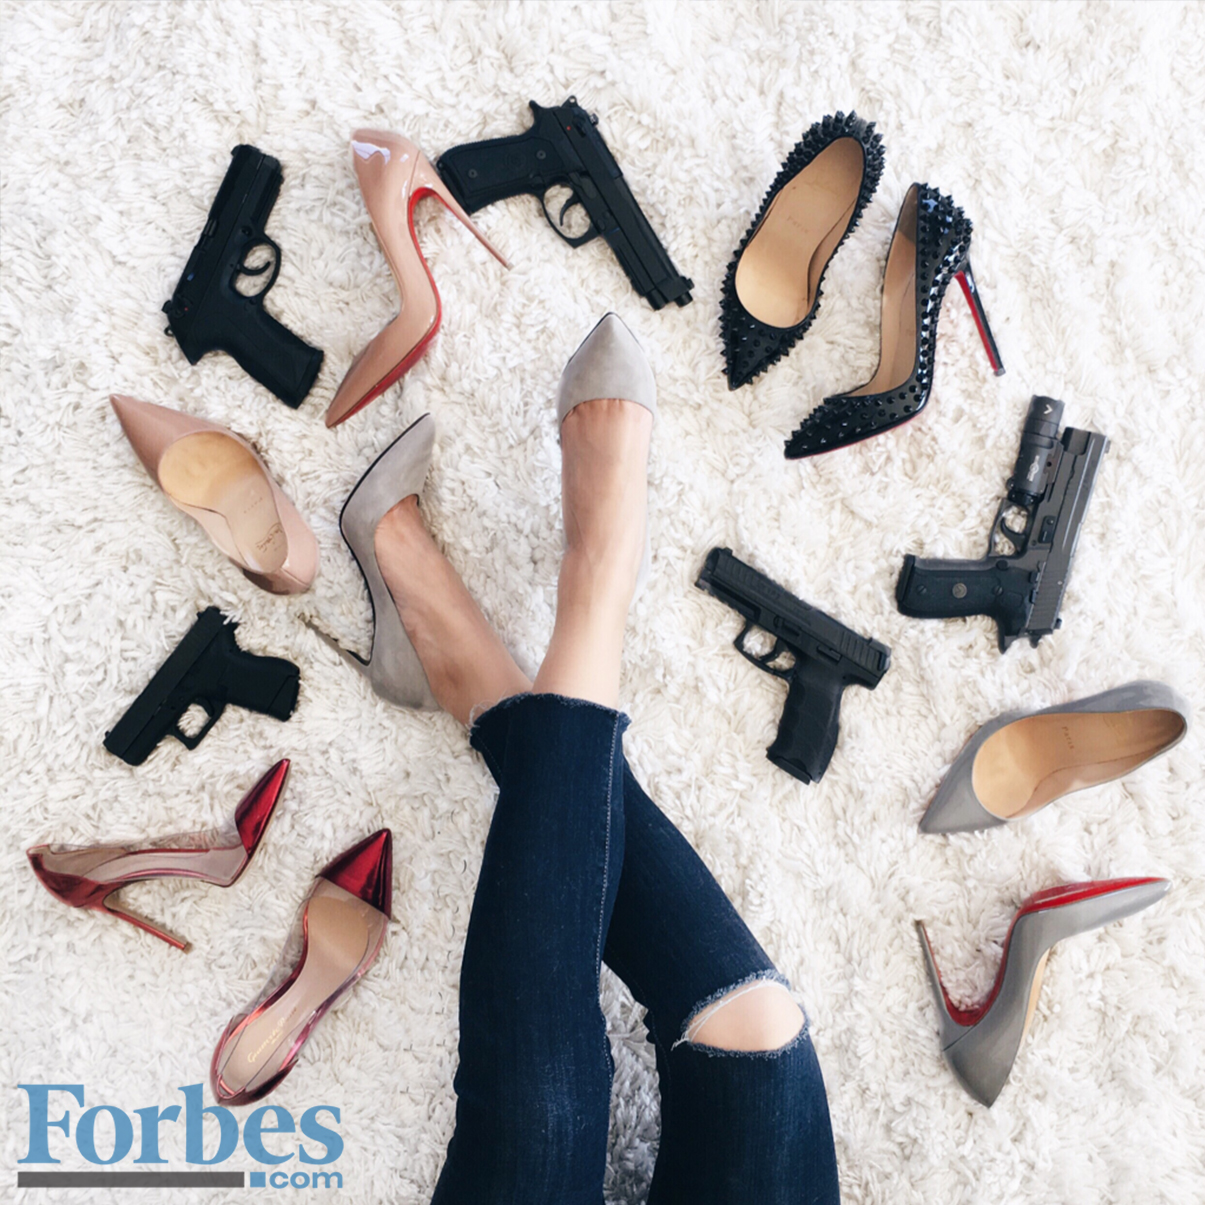 Meet The Woman Who Created A Lifestyle Brand For Women Who Wear Heels And Carry A Gun - Forbes.com | Interview